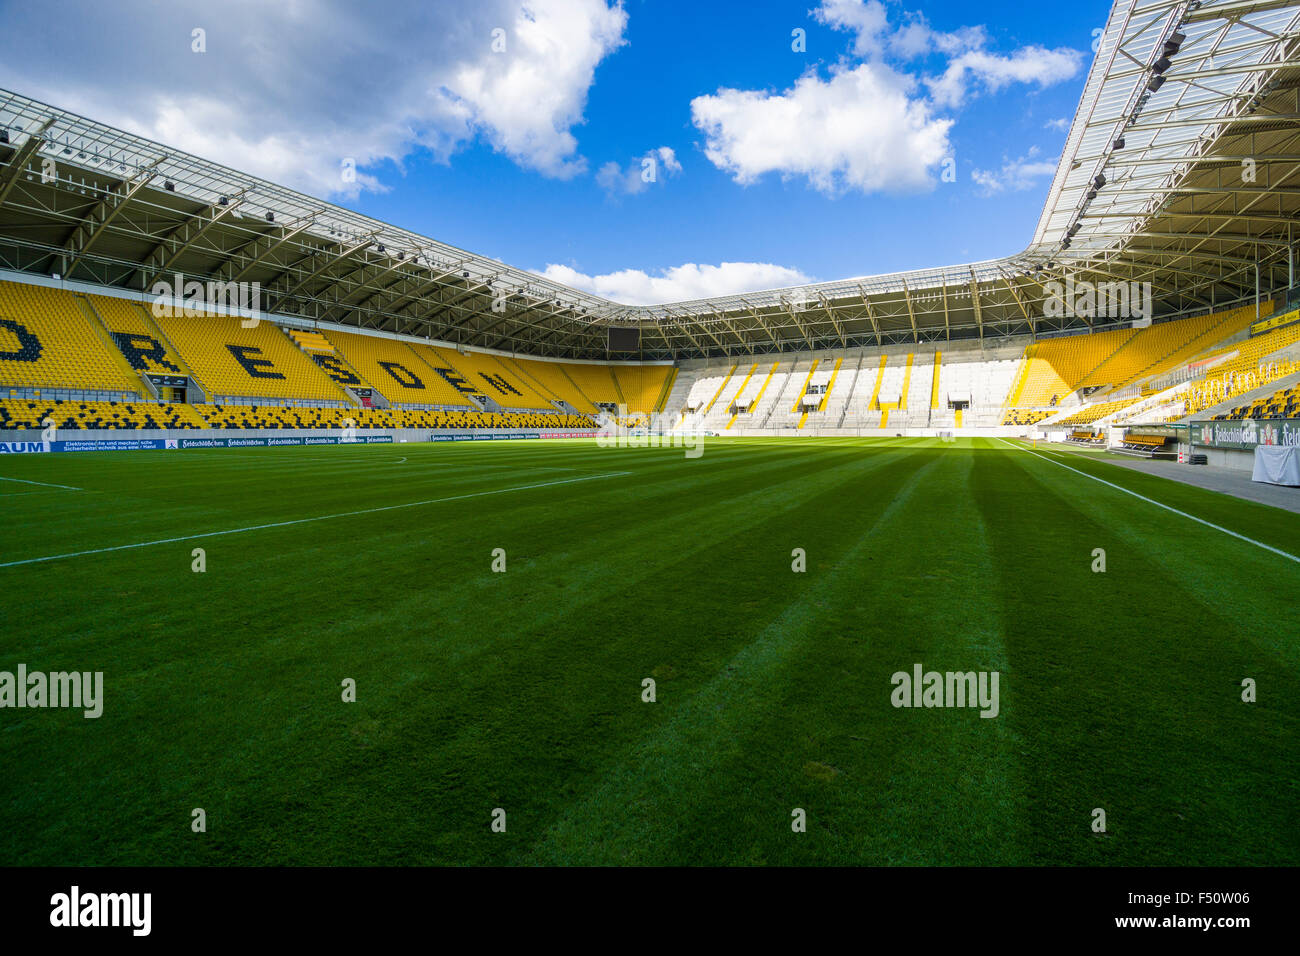 Inside view of the stadion of the football team Dynamo Dresden - Stock Image